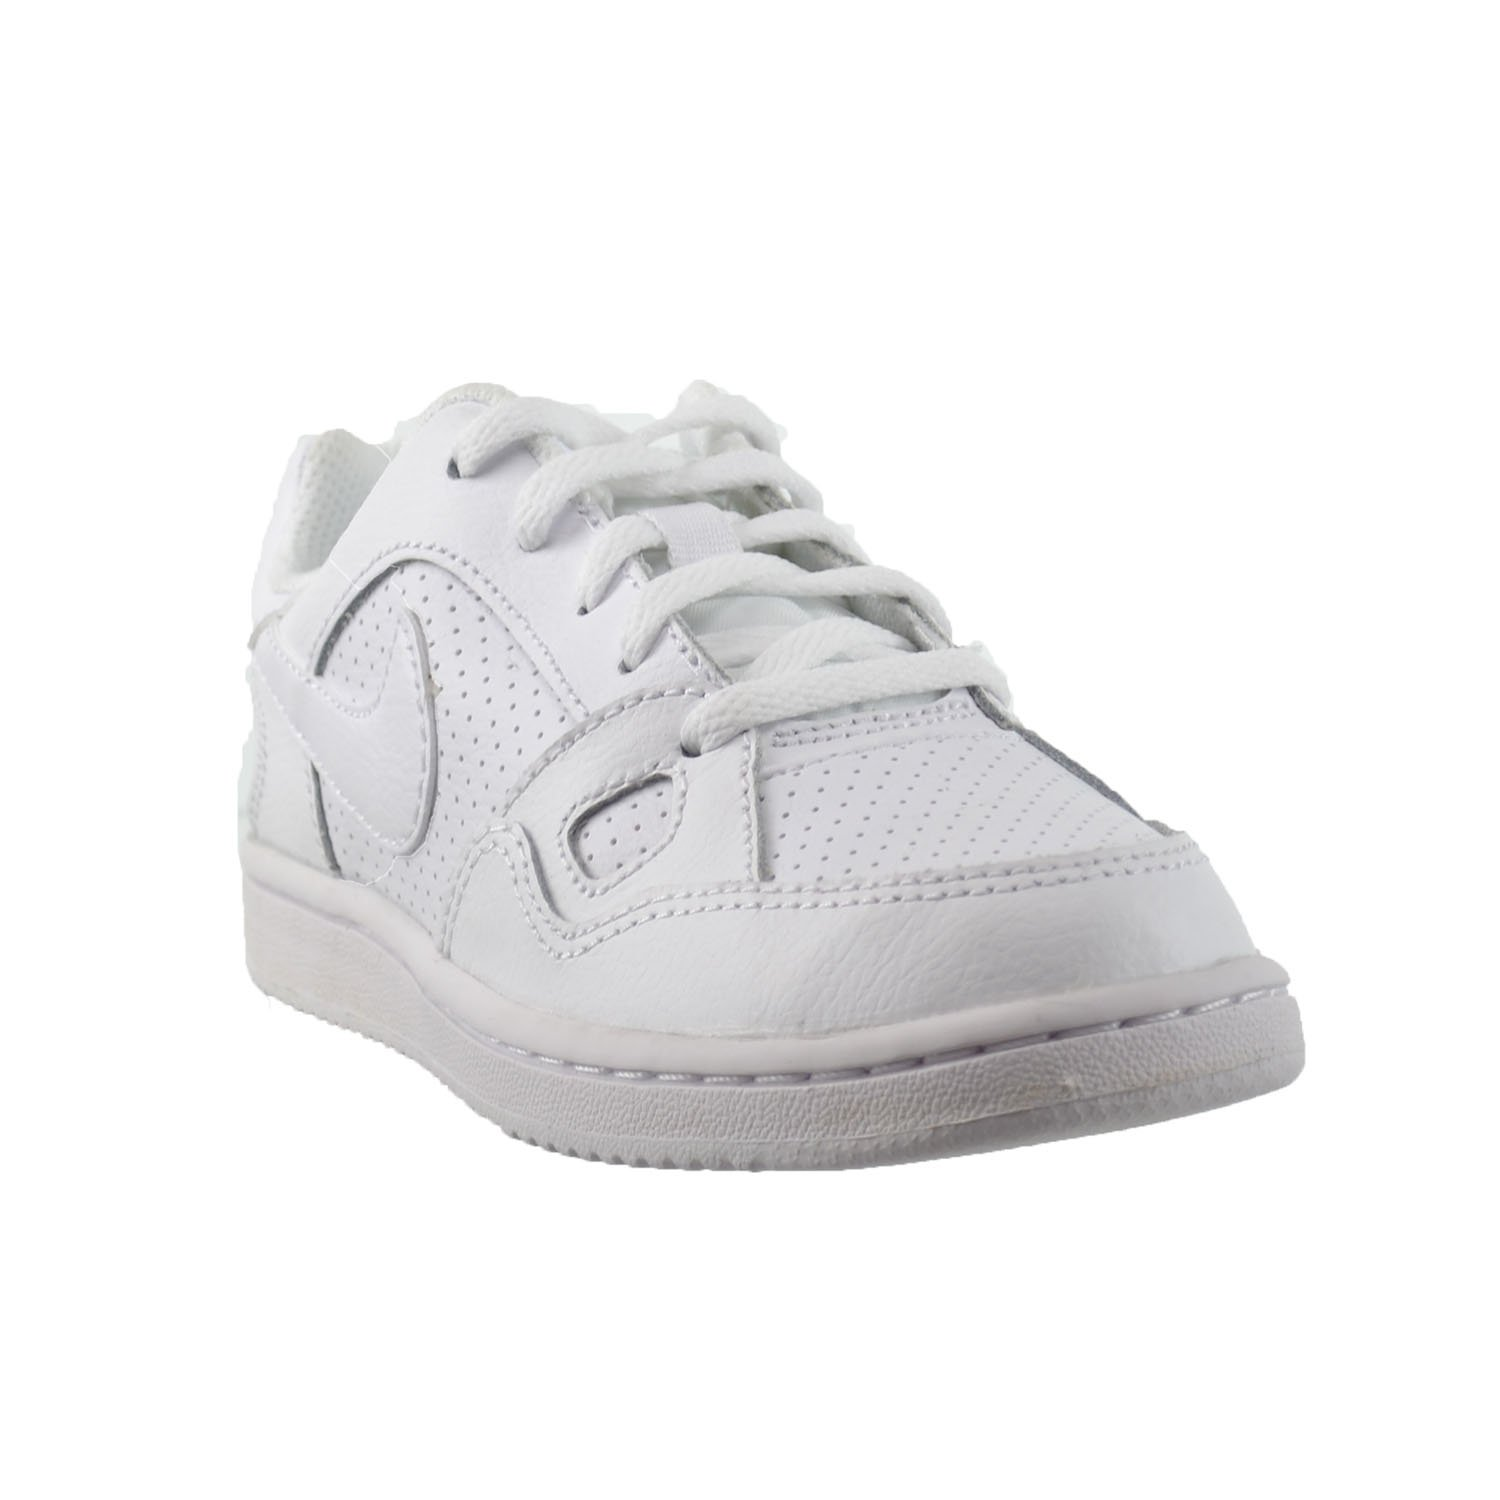 Little Kids Shoes White//White 615152-109 Nike Son of Force PS